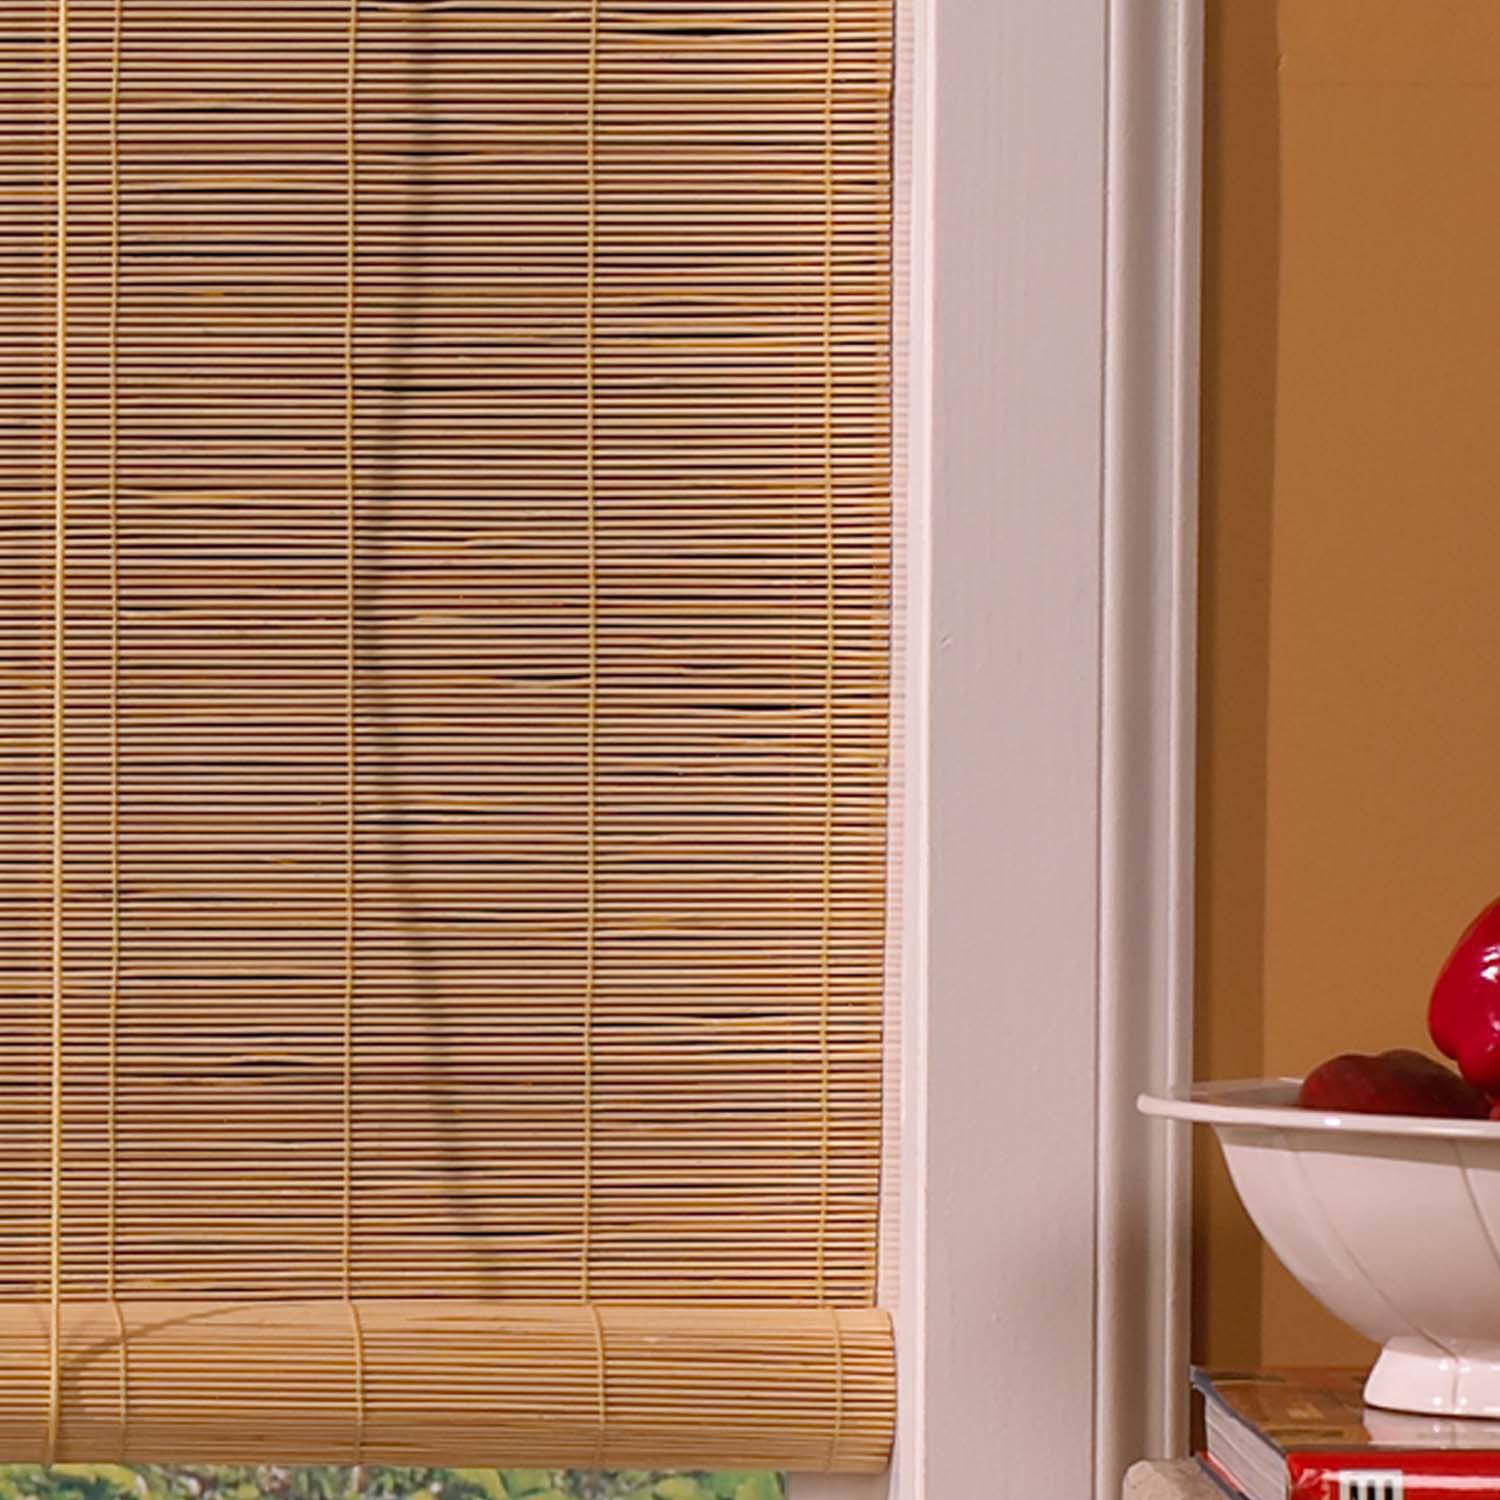 Matchstick Blinds Ikea | Vertical Blinds Walmart | Bamboo Shades Target